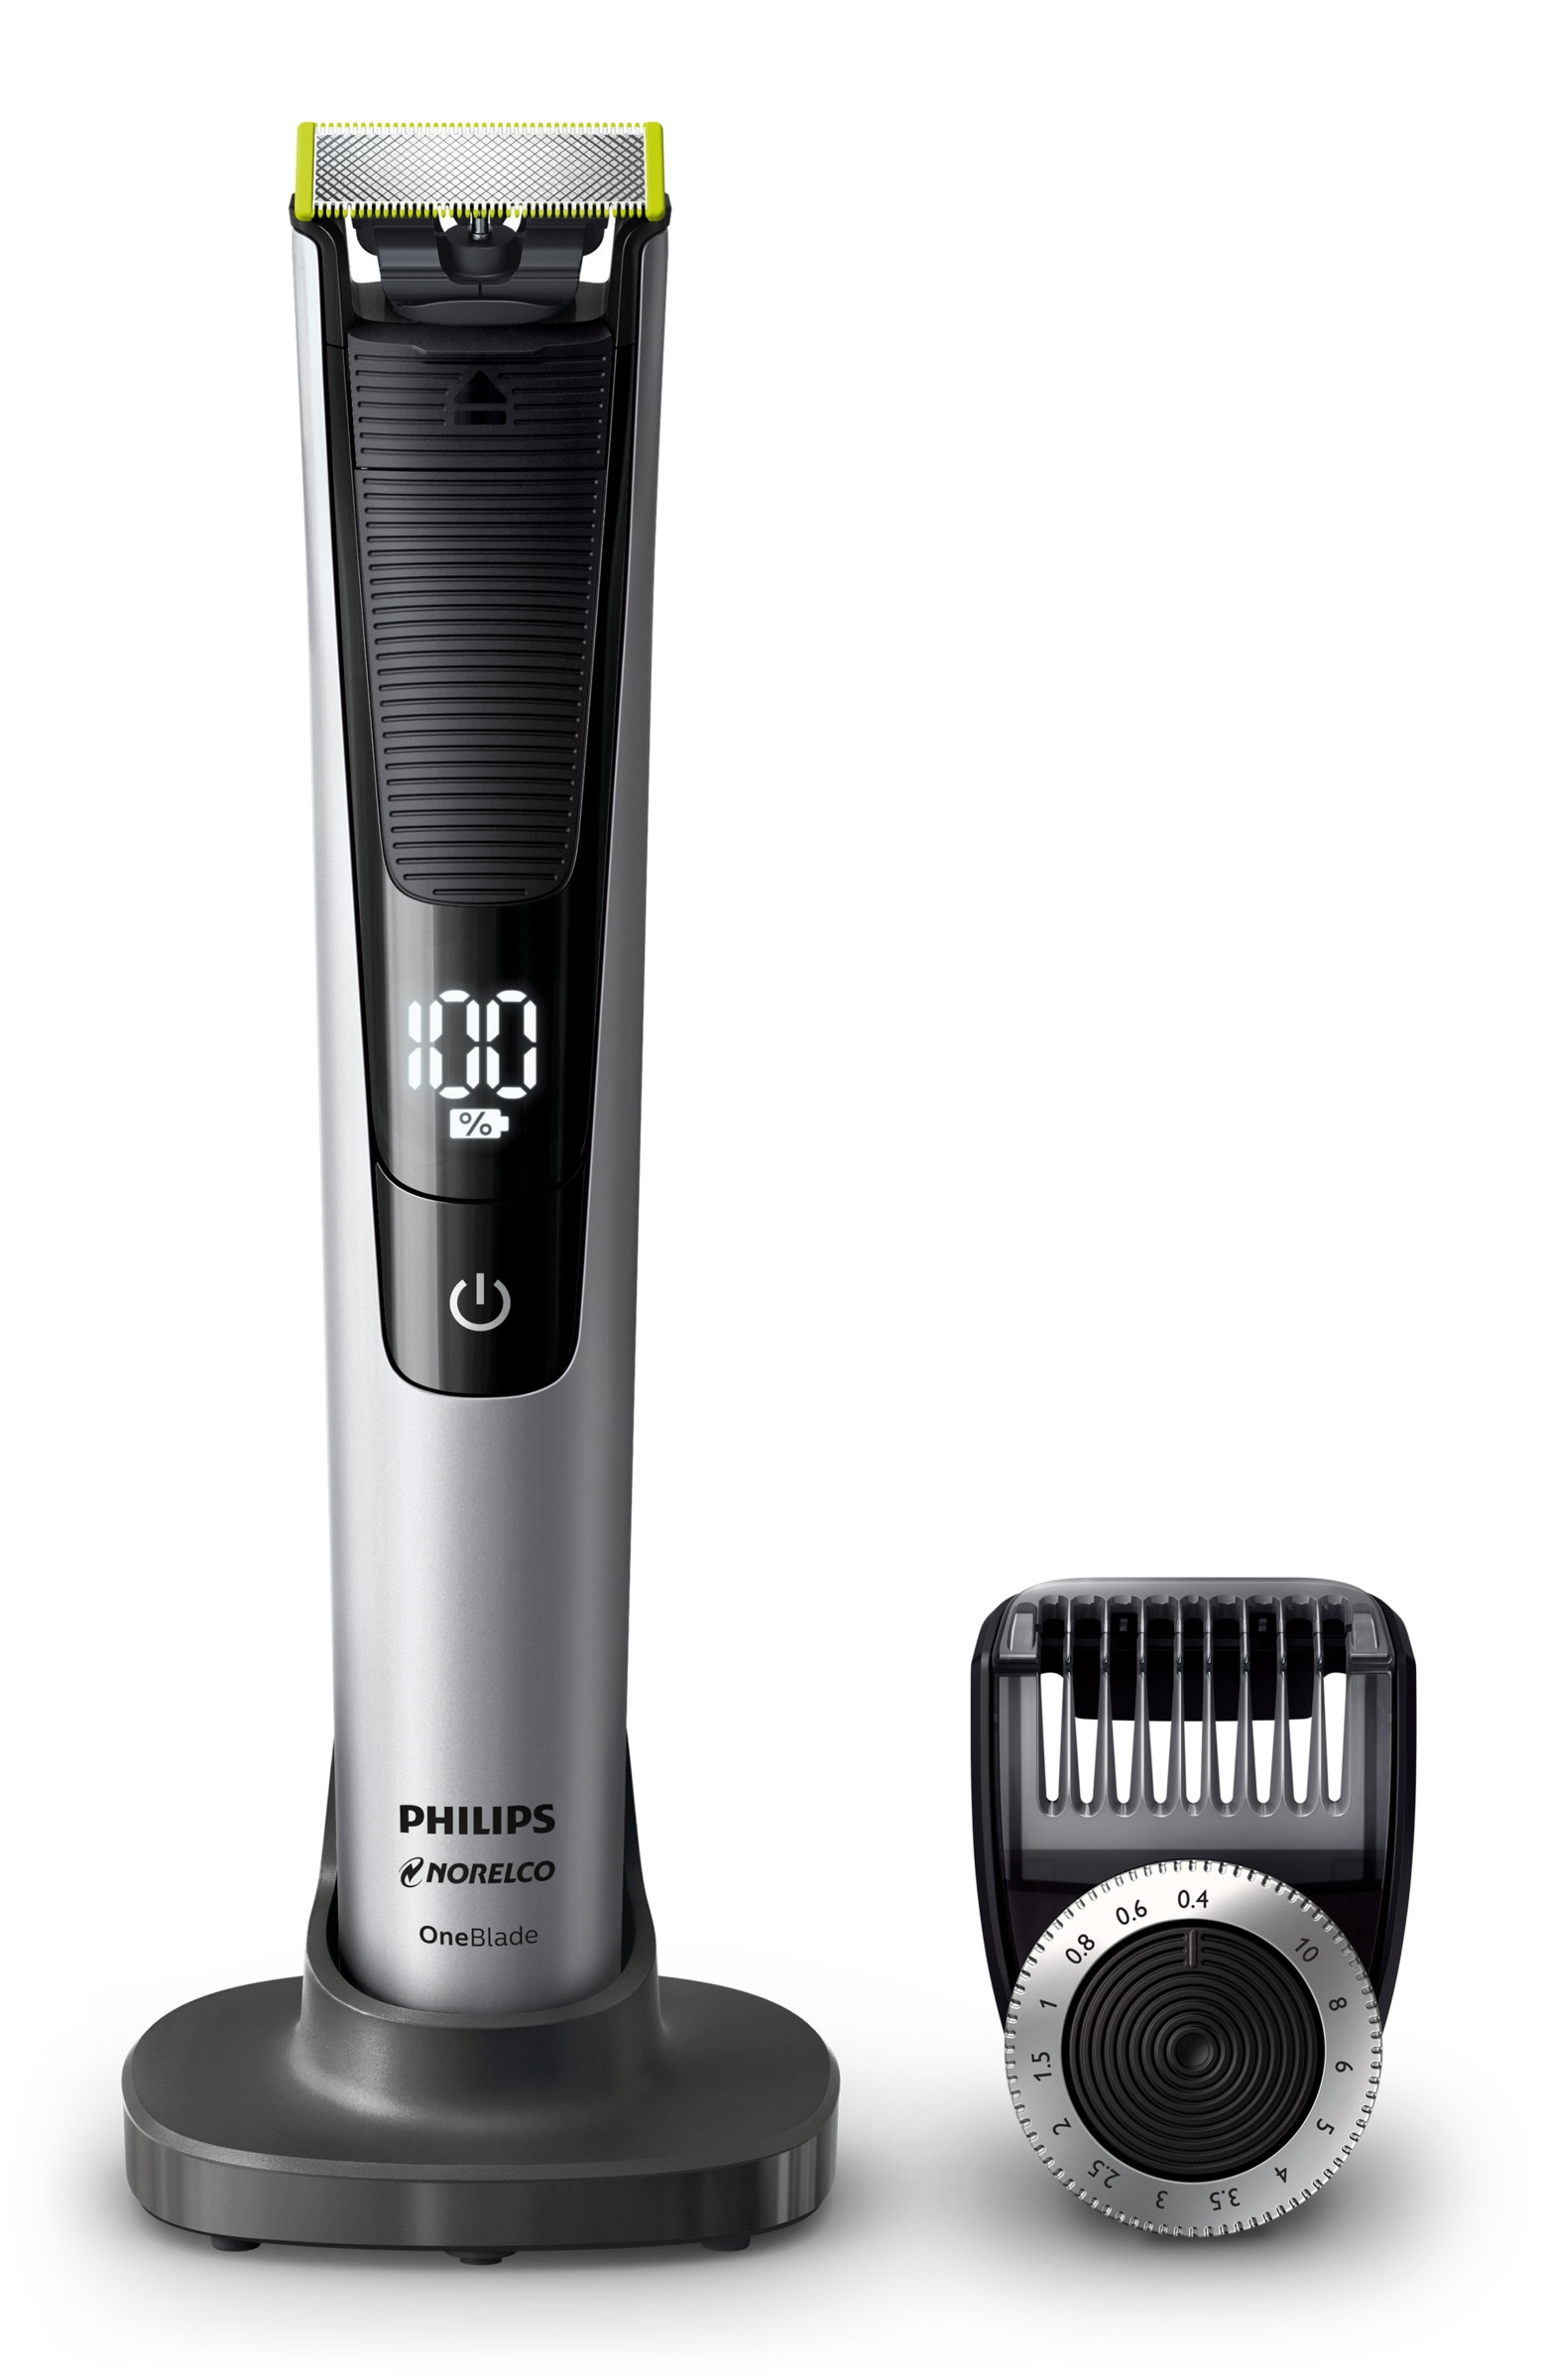 Philips Norelco Electric Shaver ONLY $59.95 + FREE Shipping